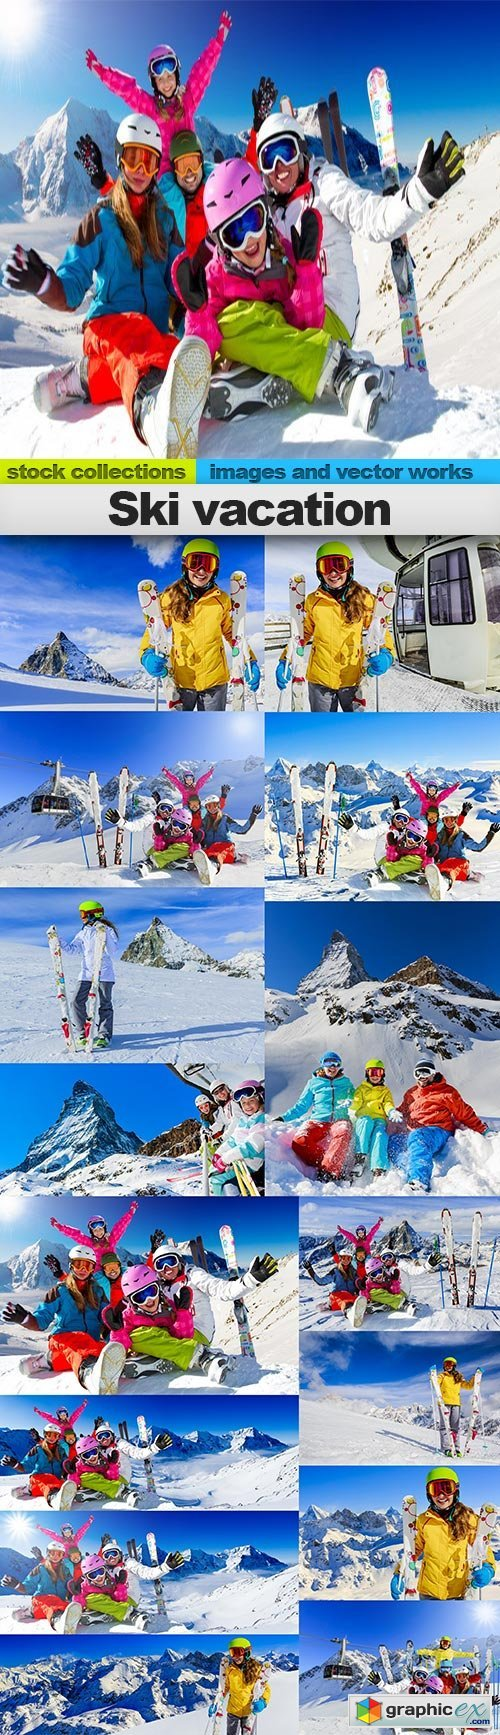 Ski vacation, 15 x UHQ JPEG